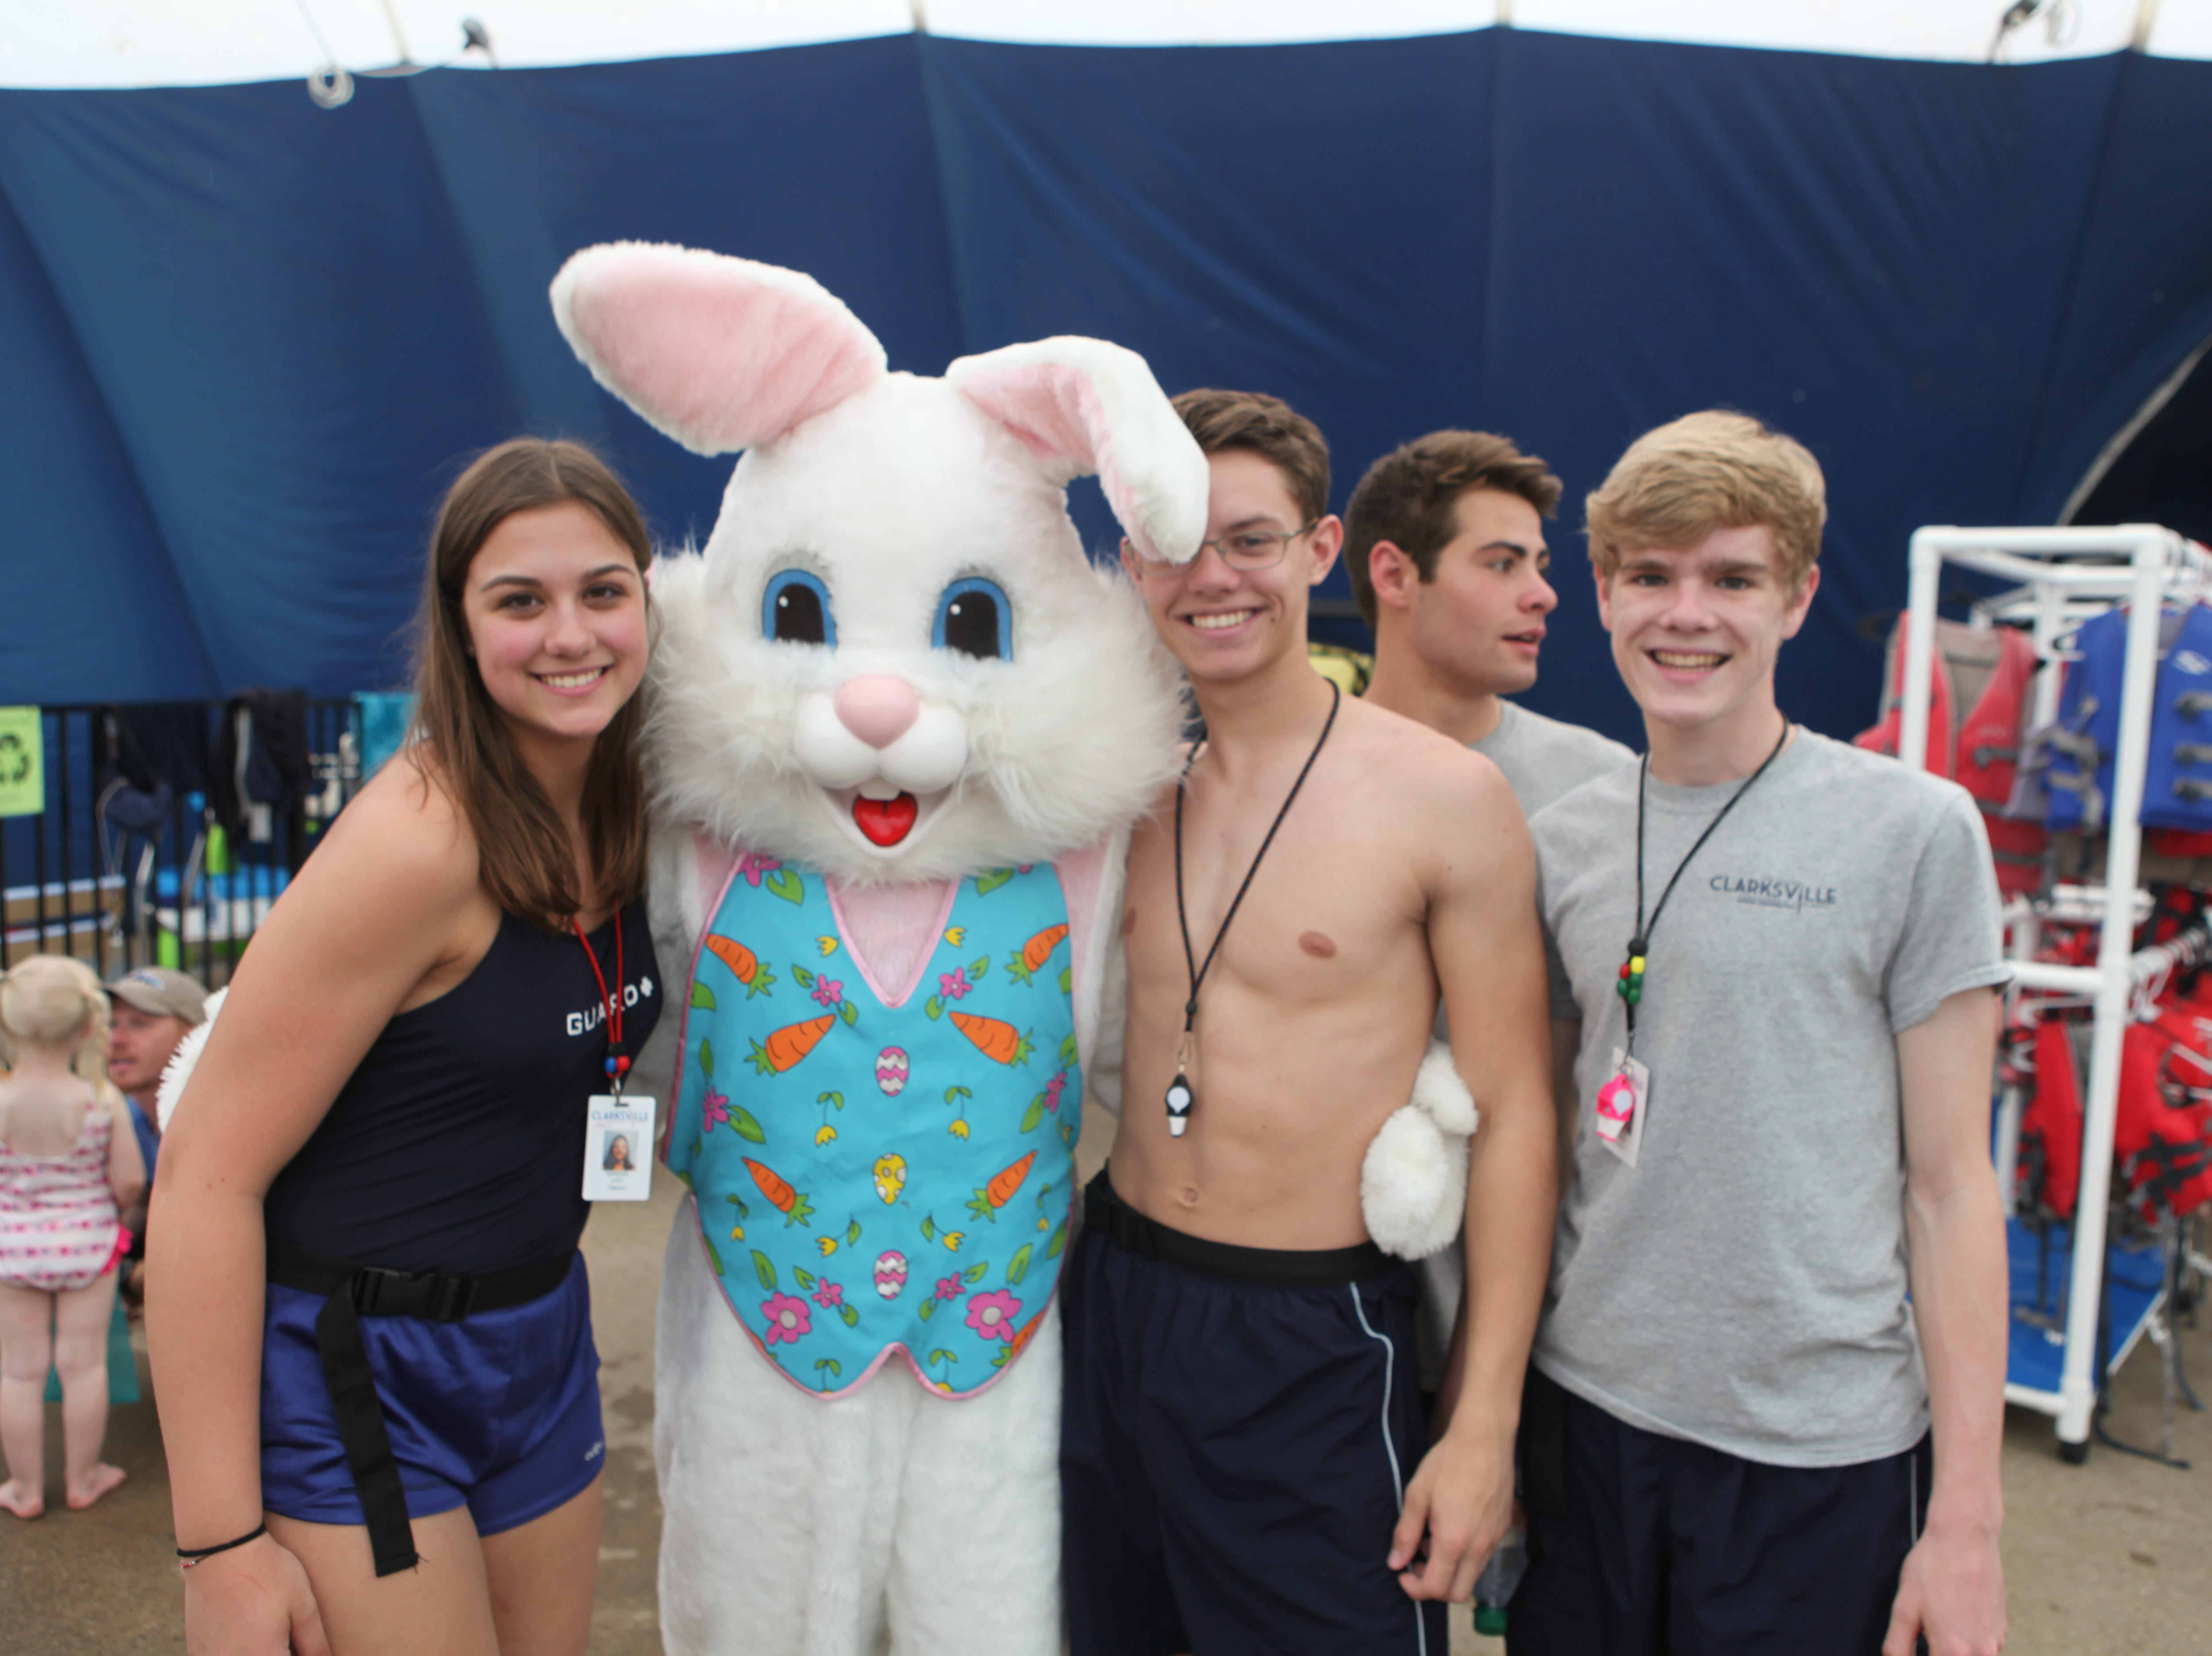 Clarksville Parks and Recreation hosted its annual Wettest Egg Hunt at the New Providence Aquatic Center on Saturday, April 13, 2019.